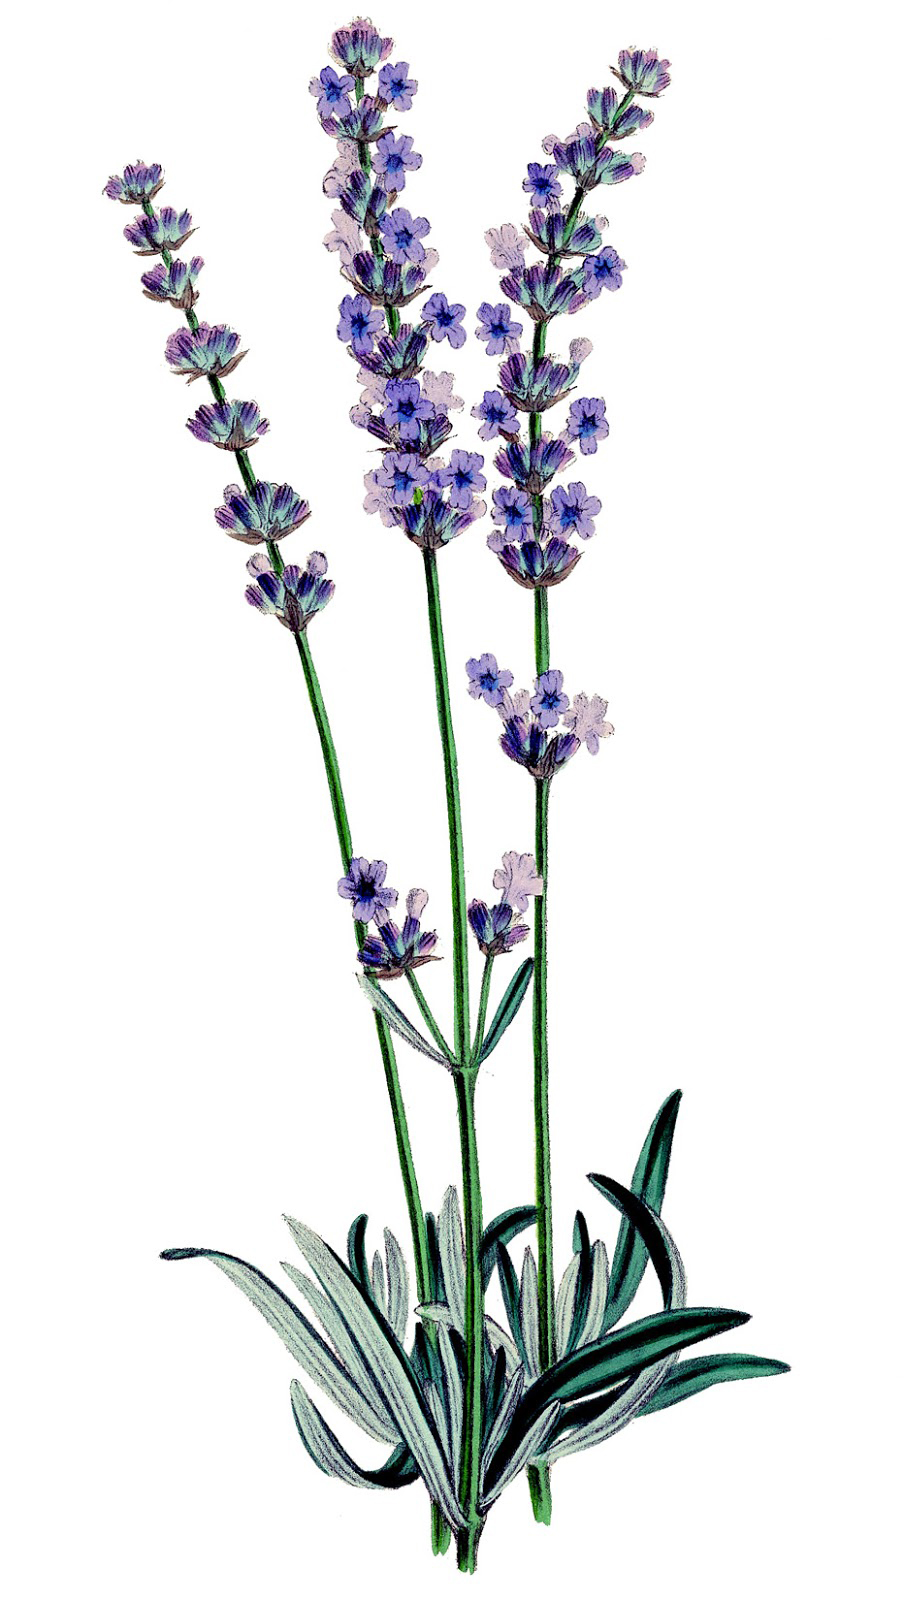 Lavender-Plant-Stock-Image-graphicsfairy1